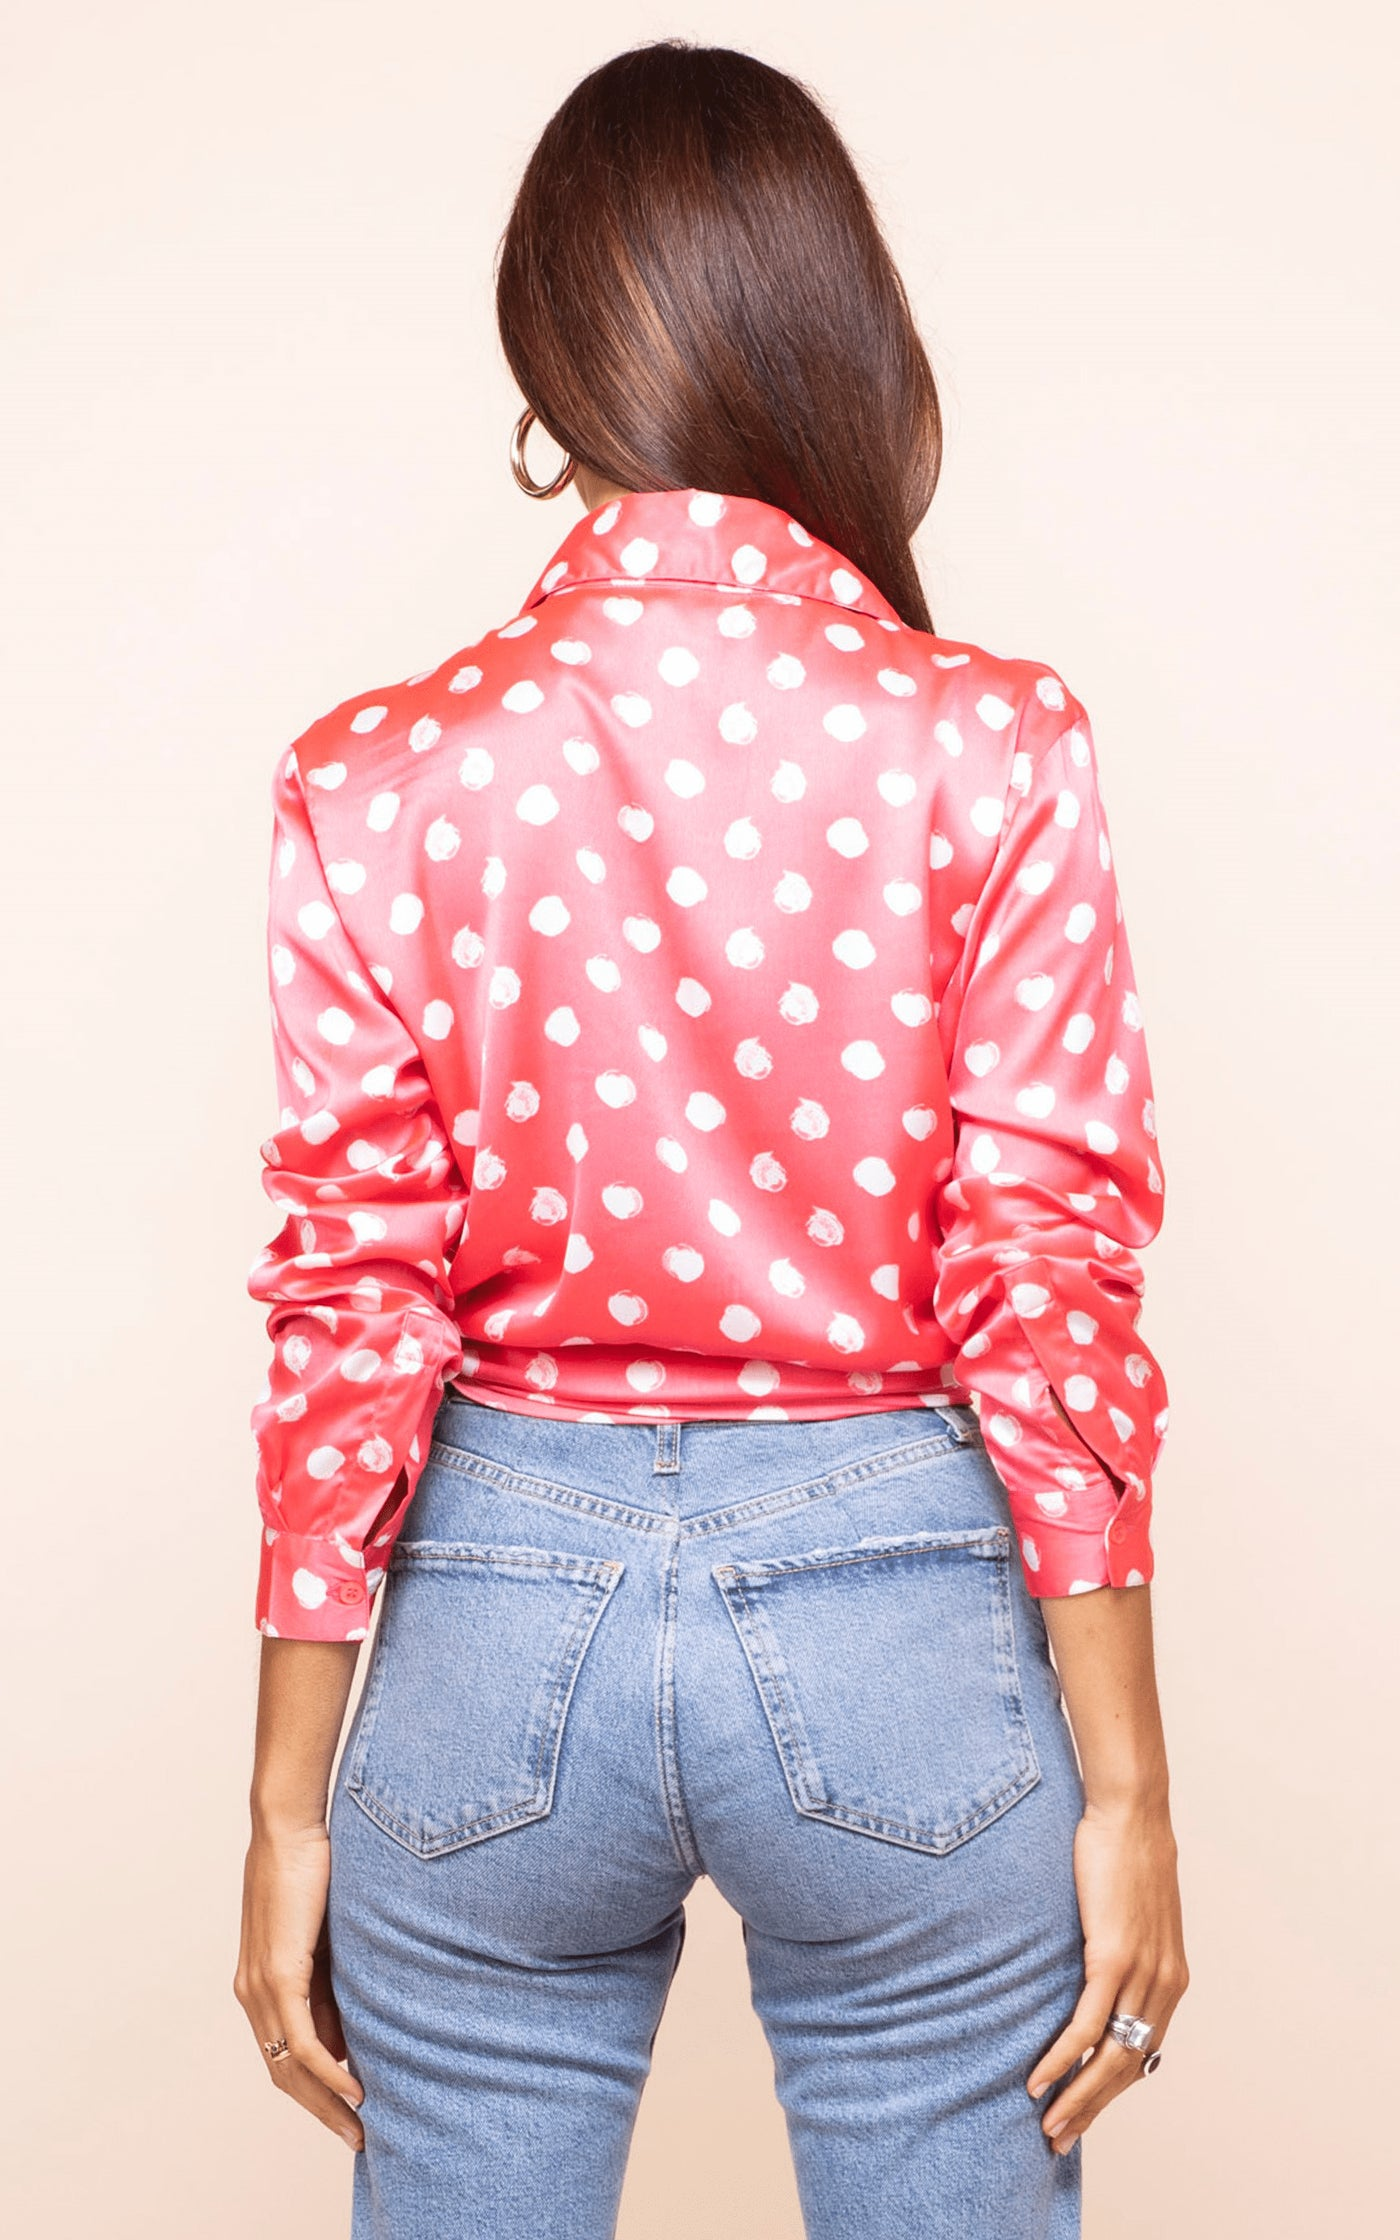 Dancing Leopard model faces backwards wearing Nevada Shirt in red dotty print with jeans